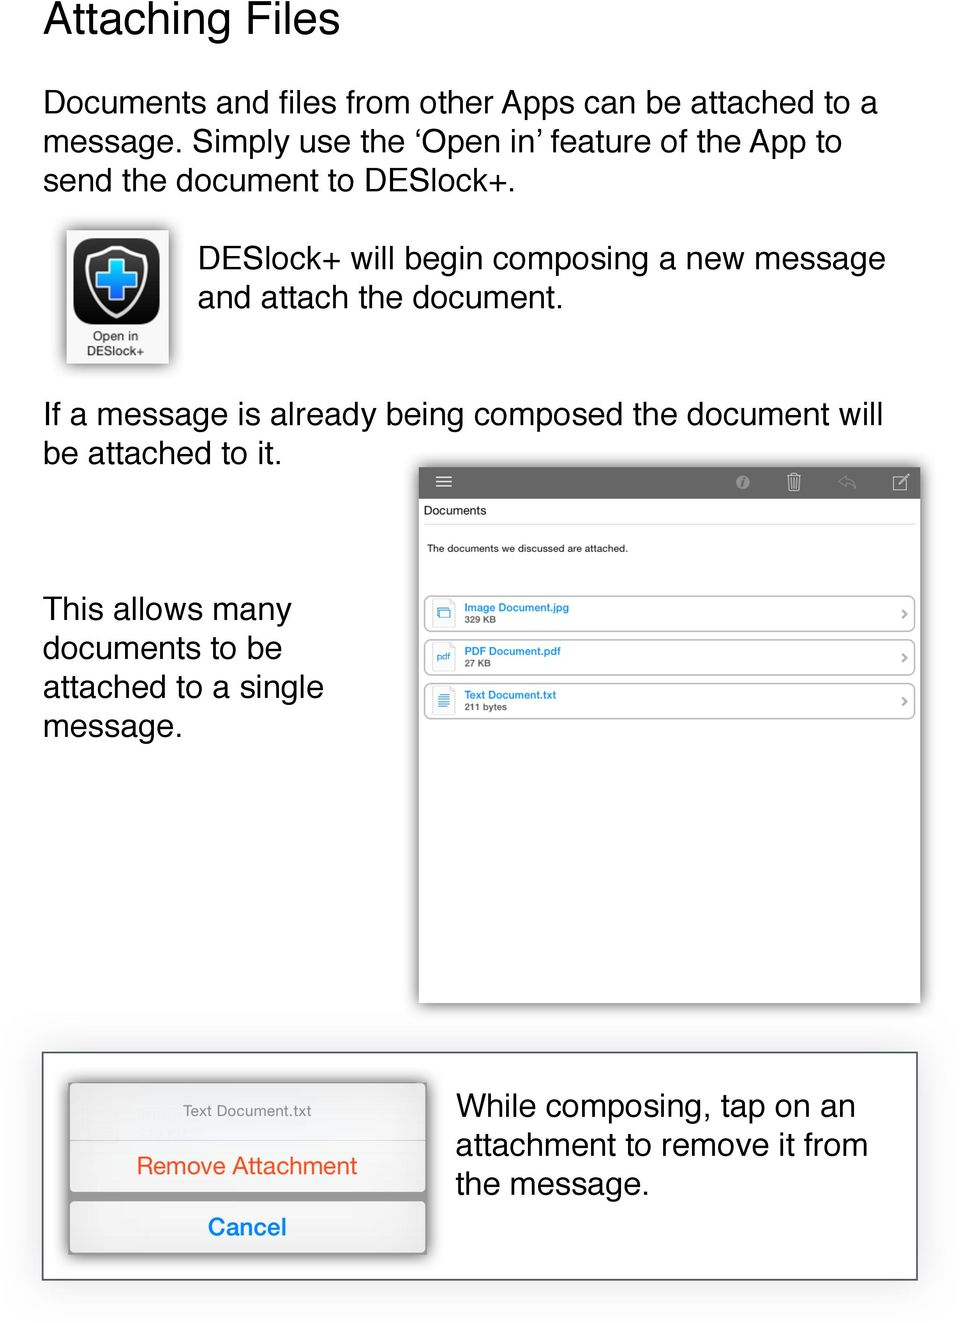 DESlock+ will begin composing a new message and attach the document.